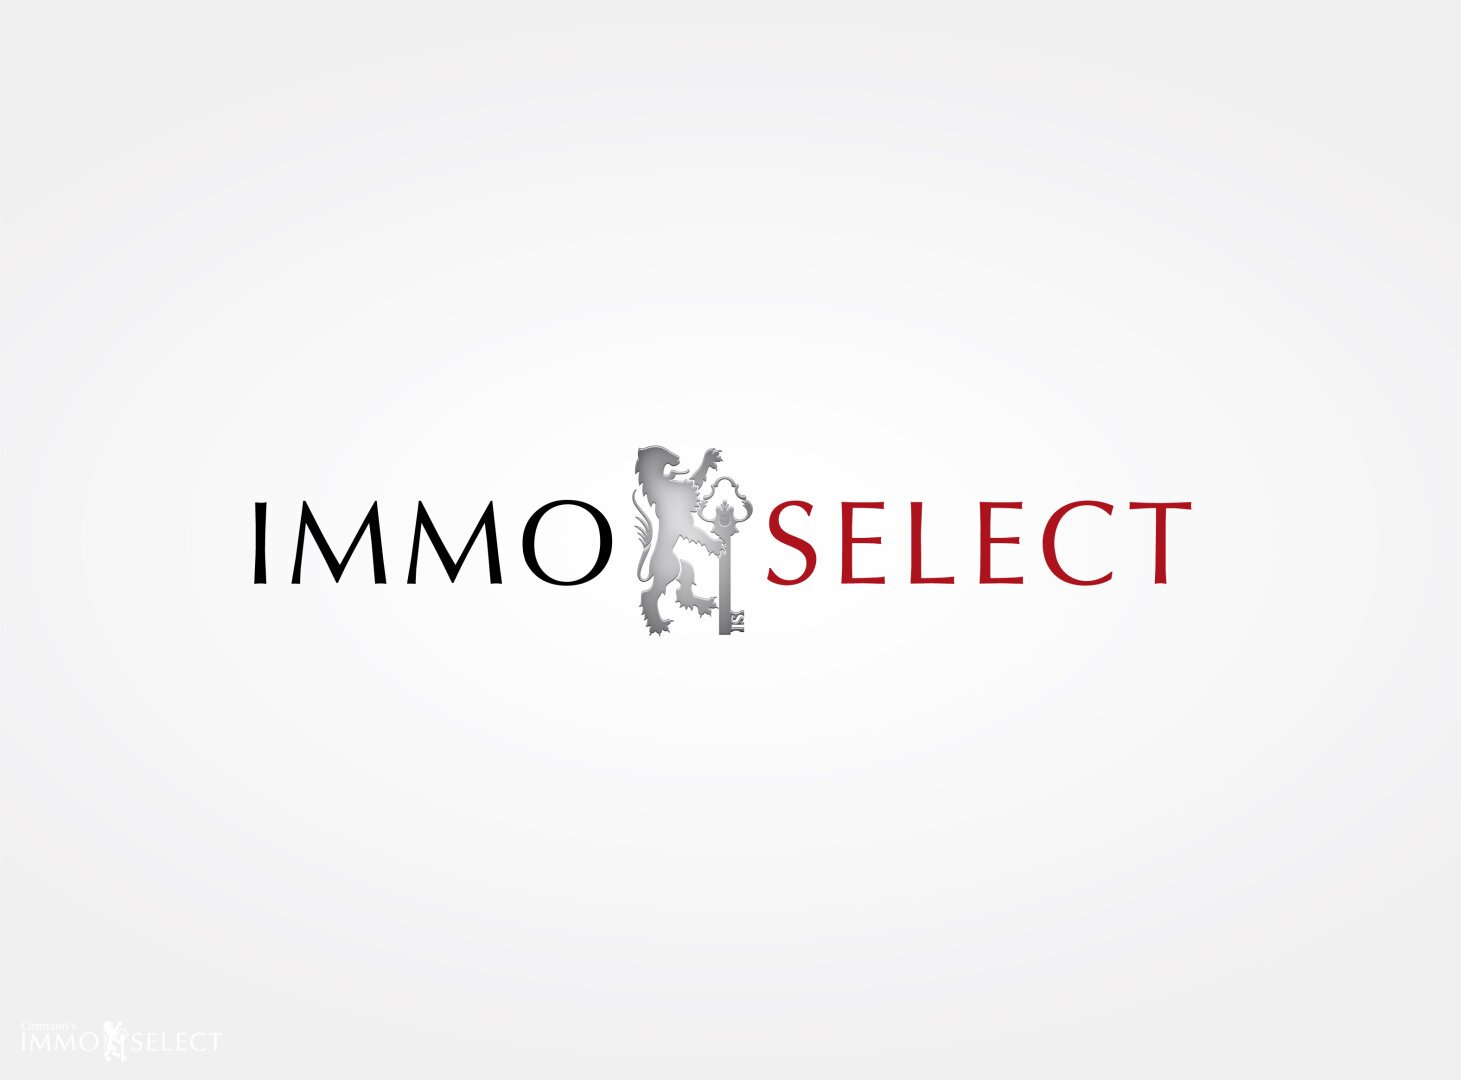 ImmoSelect